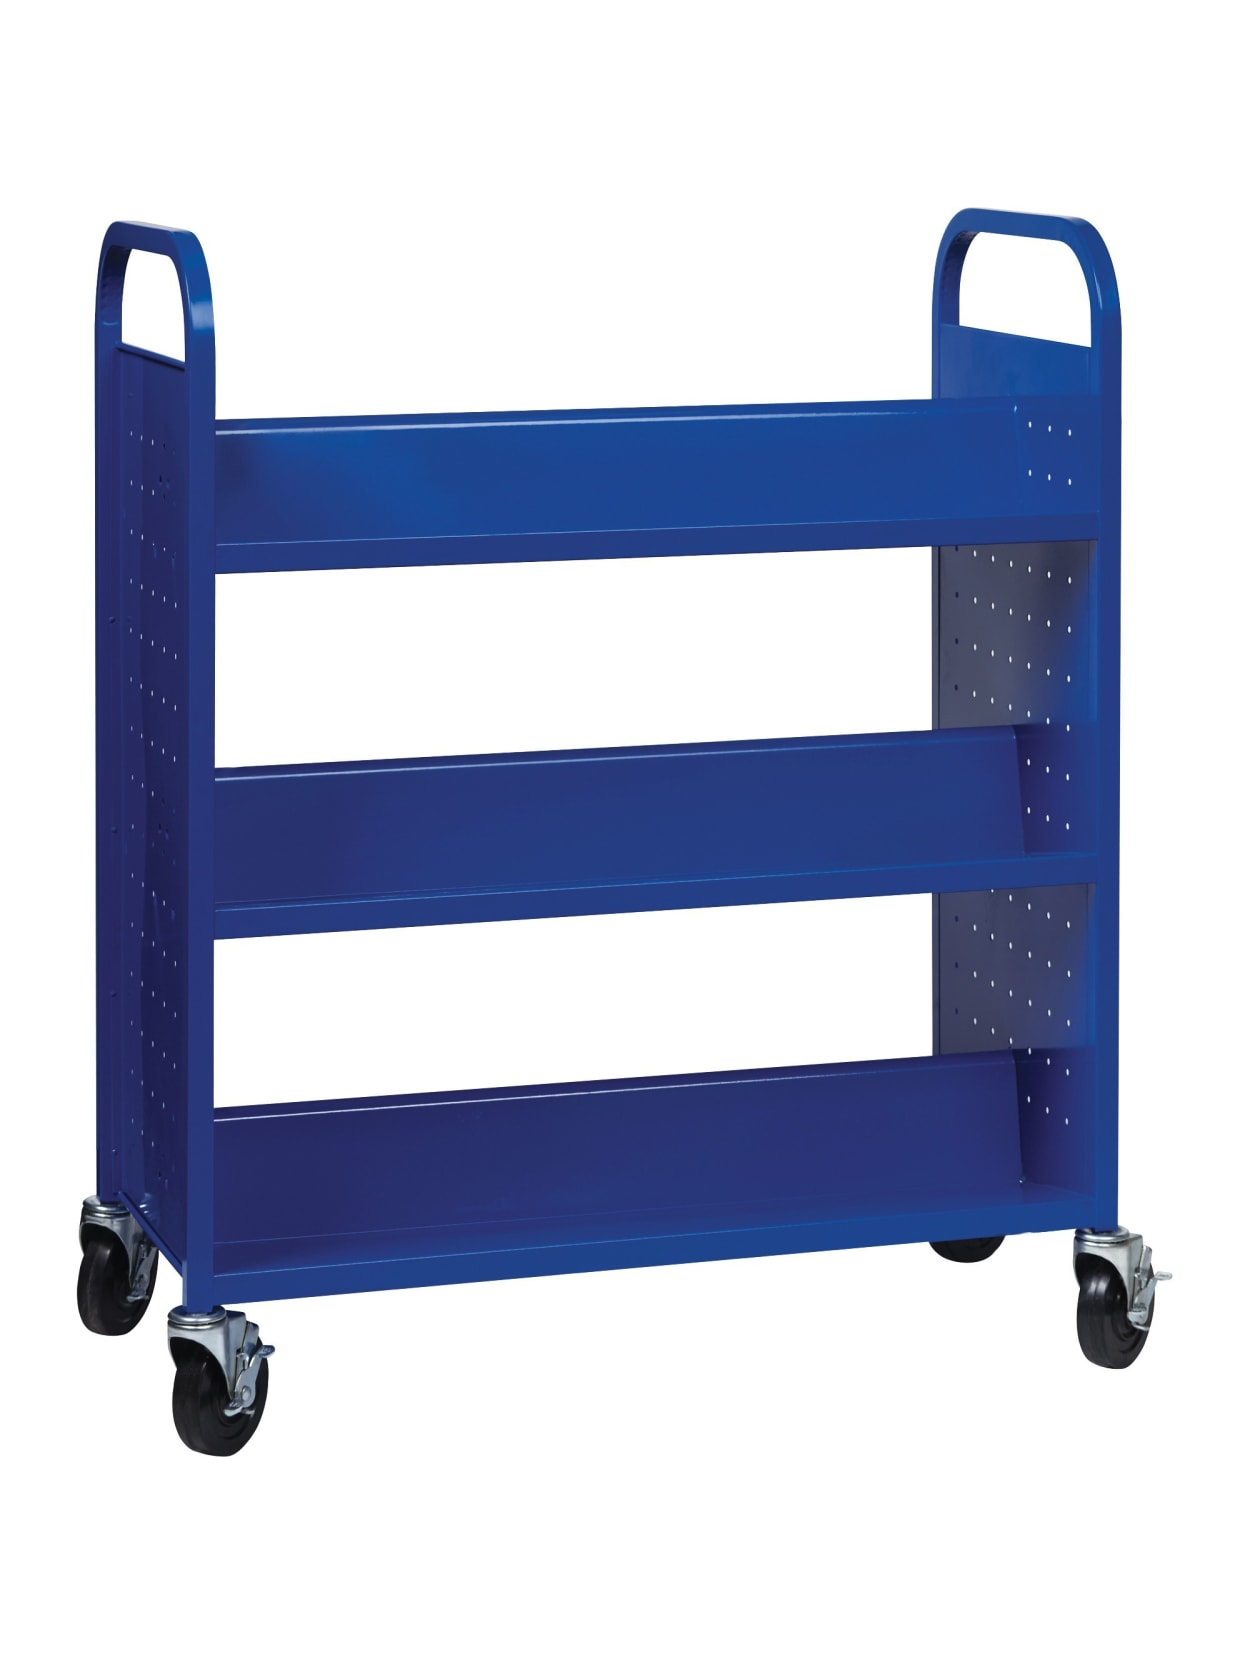 Lorell Double Sided Book Cart 6 Shelf Round Handle 5 Caster Size Steel 38 Width X 18 Depth X 46 3 Height Blue Office Depot